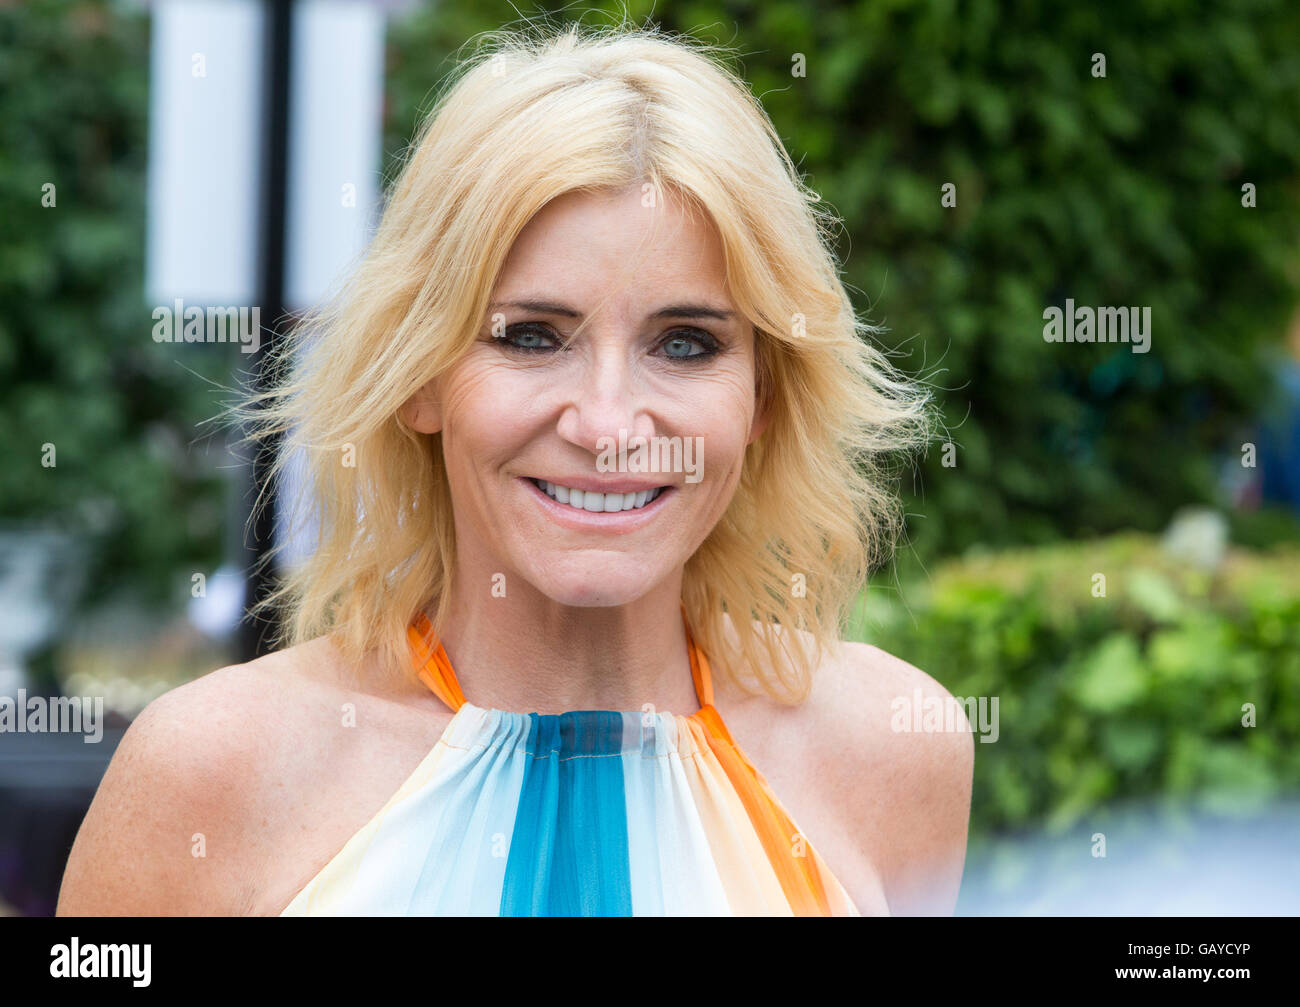 Former 'East Enders' star and actress,Michelle Collins at the RHS Hampton Court Flower show - Stock Image